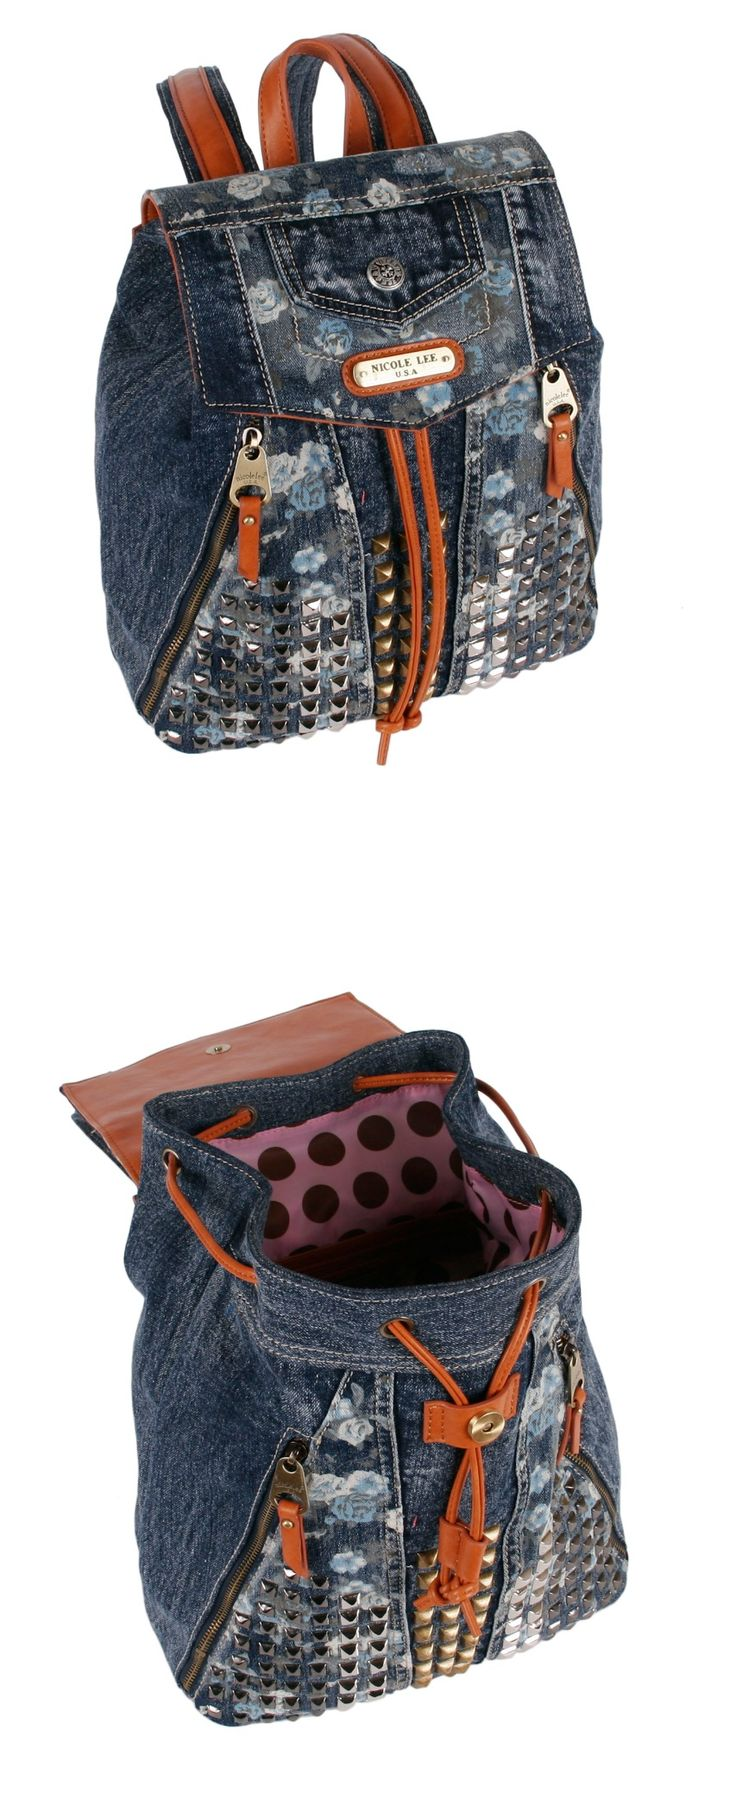 RIKKY FLORAL STUDDED DENIM BACKPACK by Nicole Lee #nicolelee #nicolelee2014 #backpack